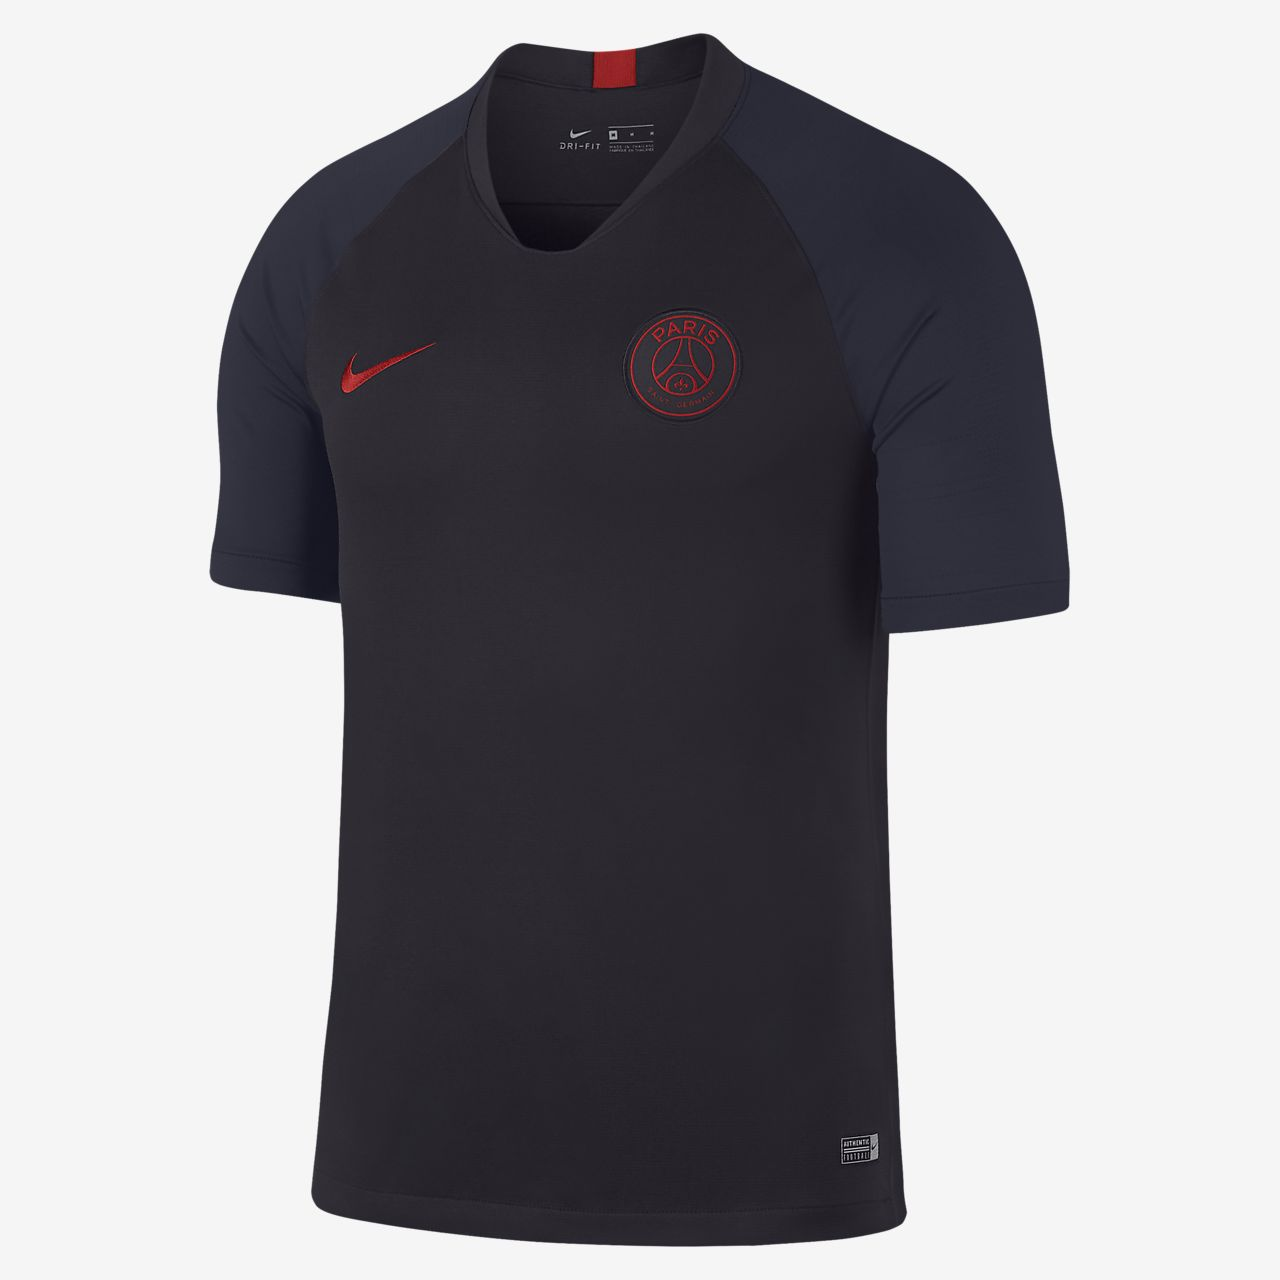 Haut de football à manches courtes Nike Breathe Paris Saint-Germain Strike pour Homme